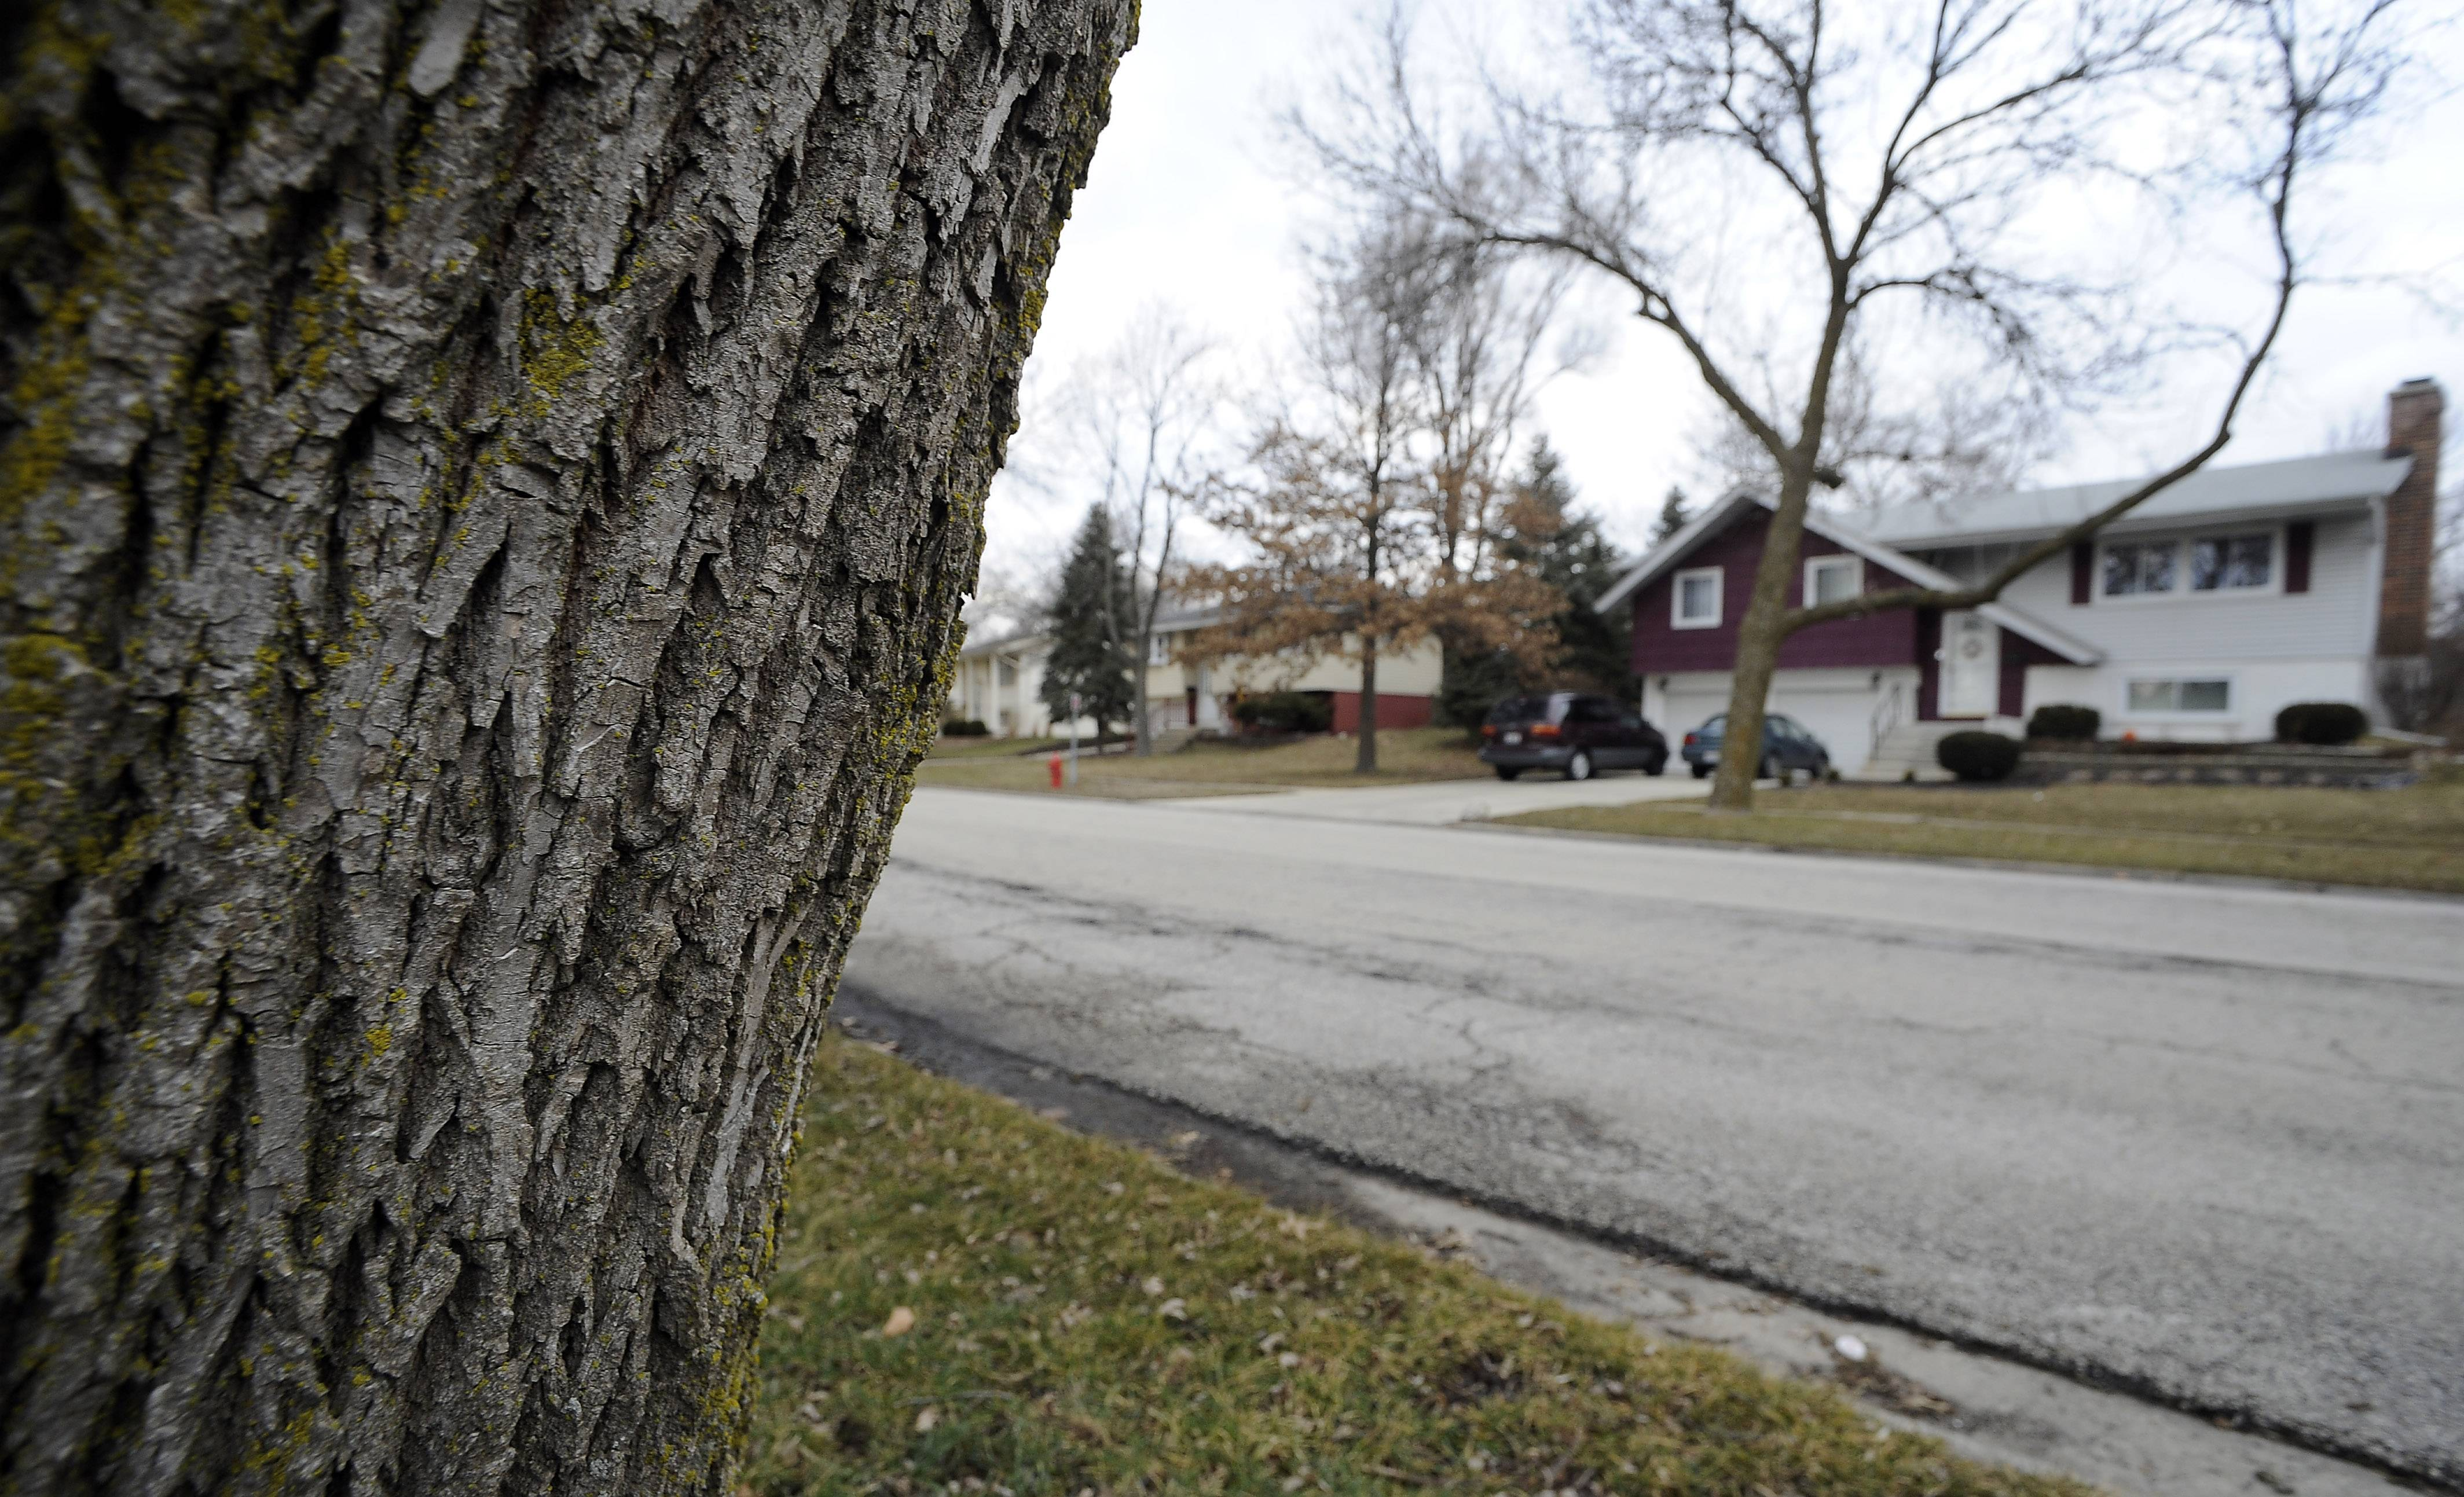 Schaumburg officials are considering a 3-cents-per-gallon motor fuel tax to help sustain the current funding levels for the repair and full reconstruction of local village streets.